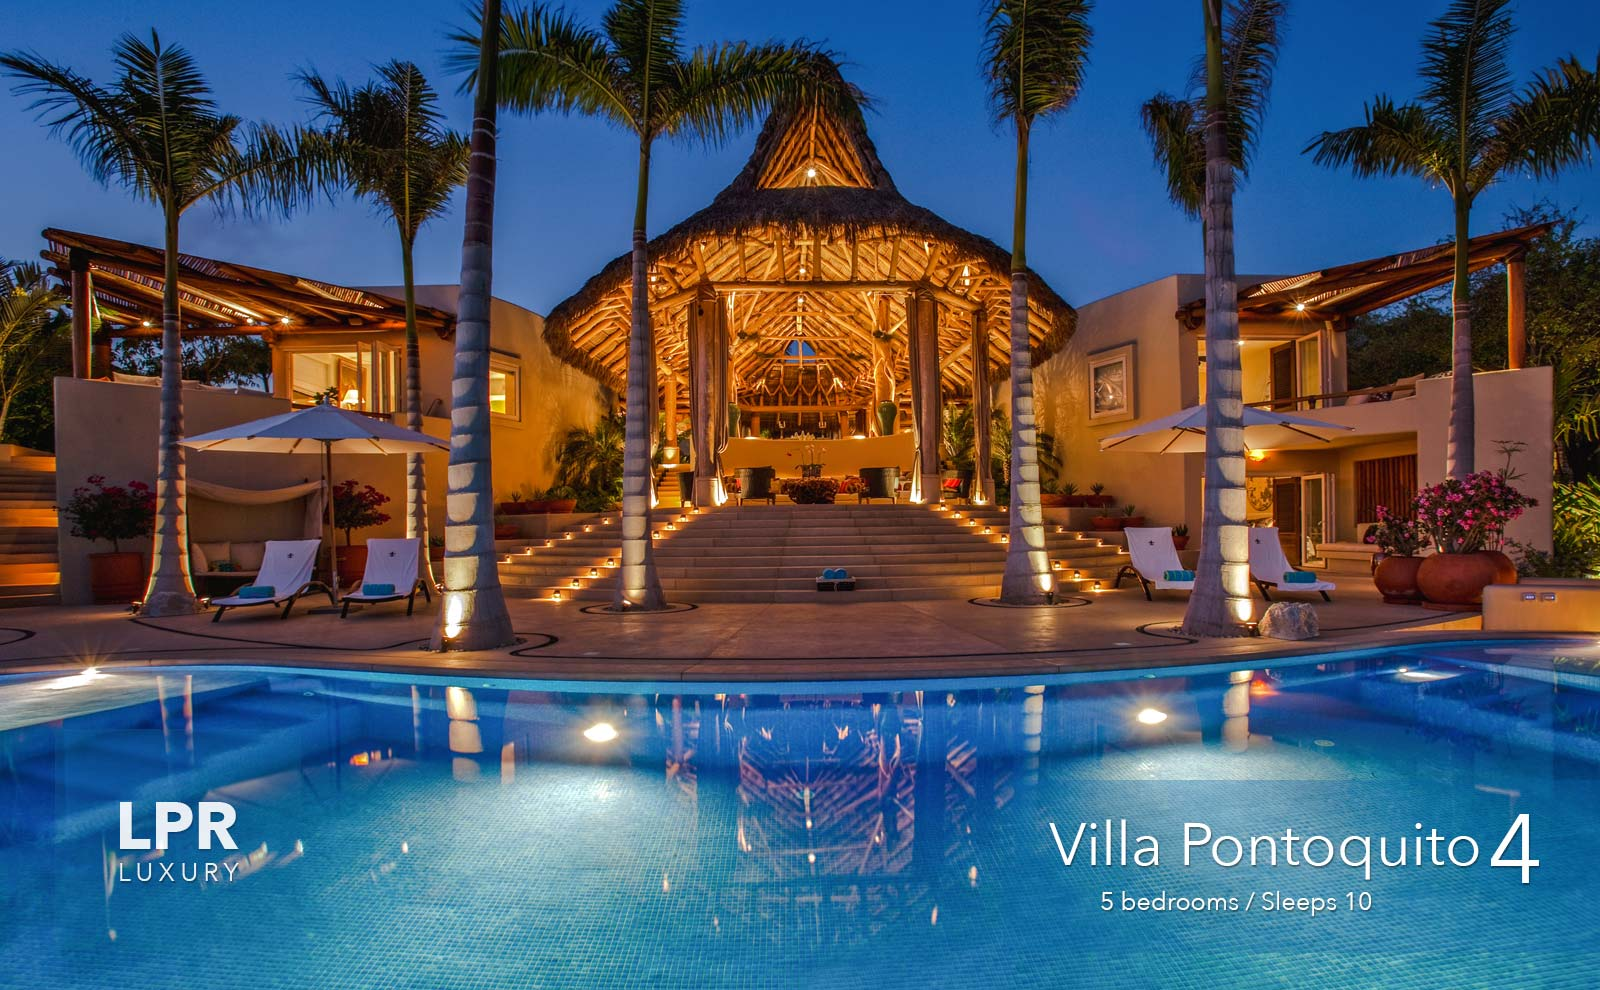 Villa Pontoquito 4 - Ultra luxury beachfront vacation rental villa real estate for sale - Punta de Mita, Riviera Nayarit, Mexico